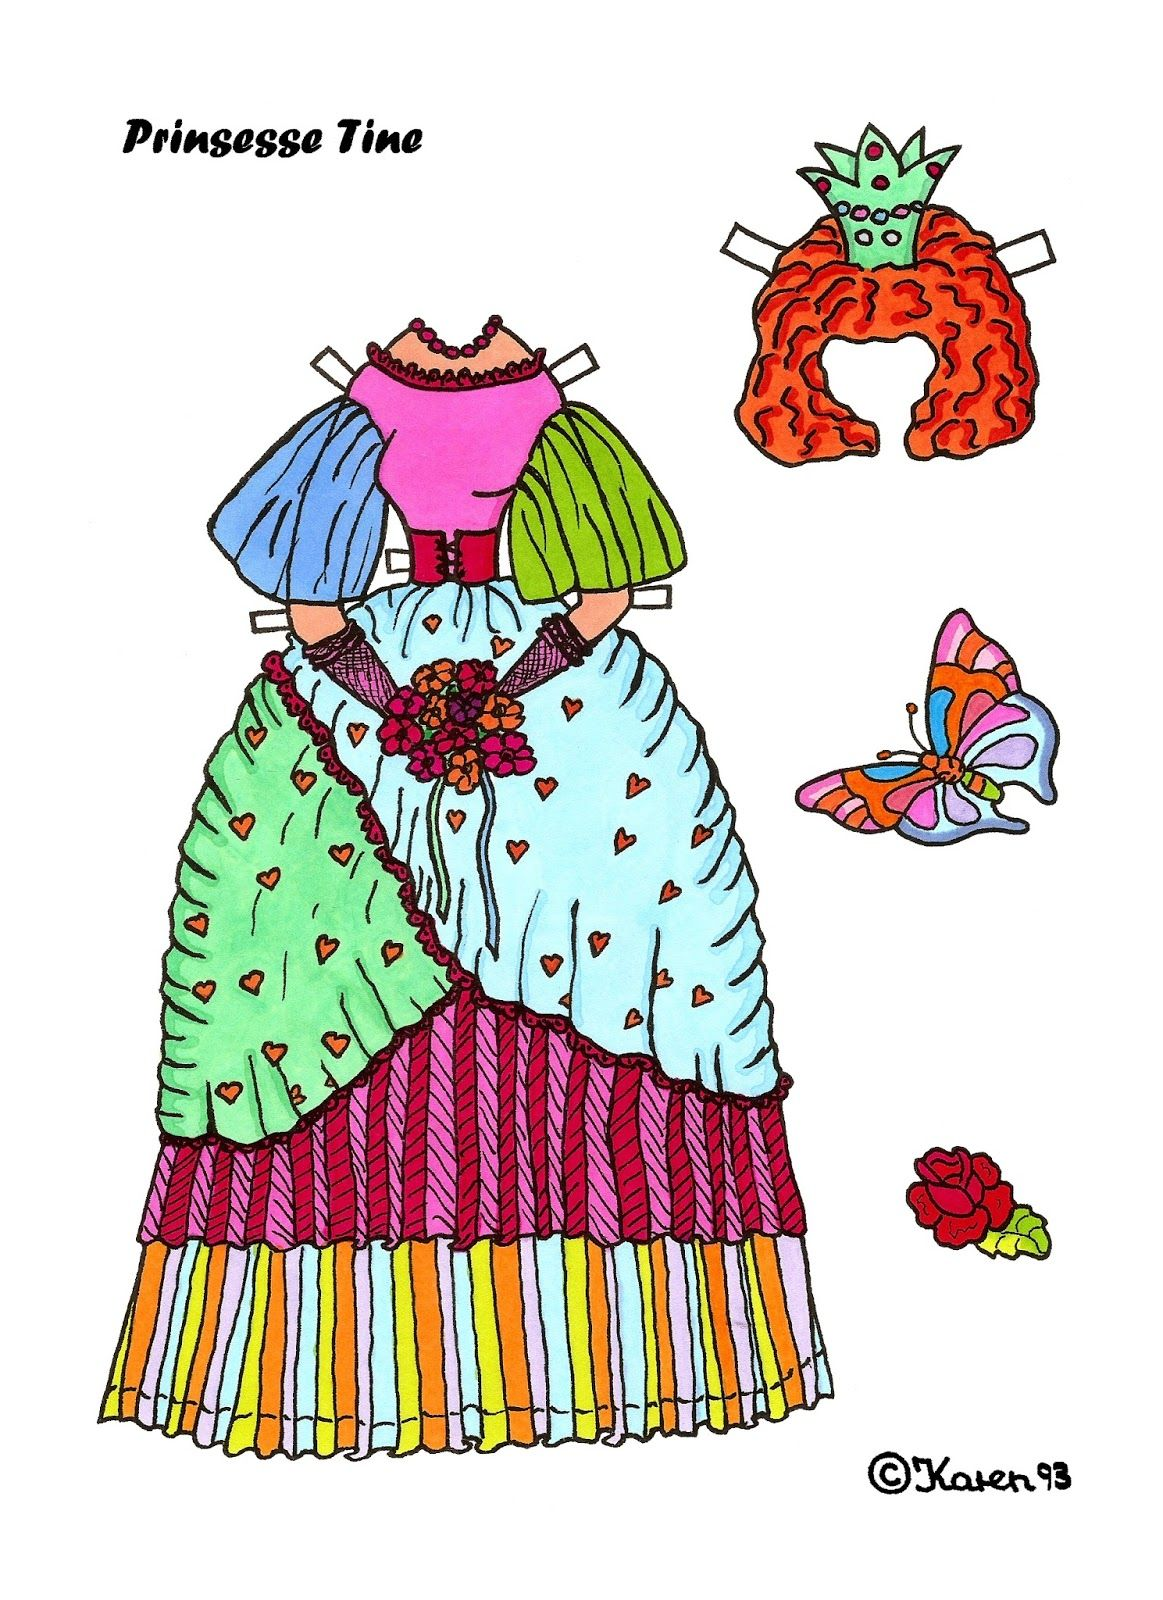 Pin by Marien Rutigliano on Paper doll to color | Pinterest | Dolls ...